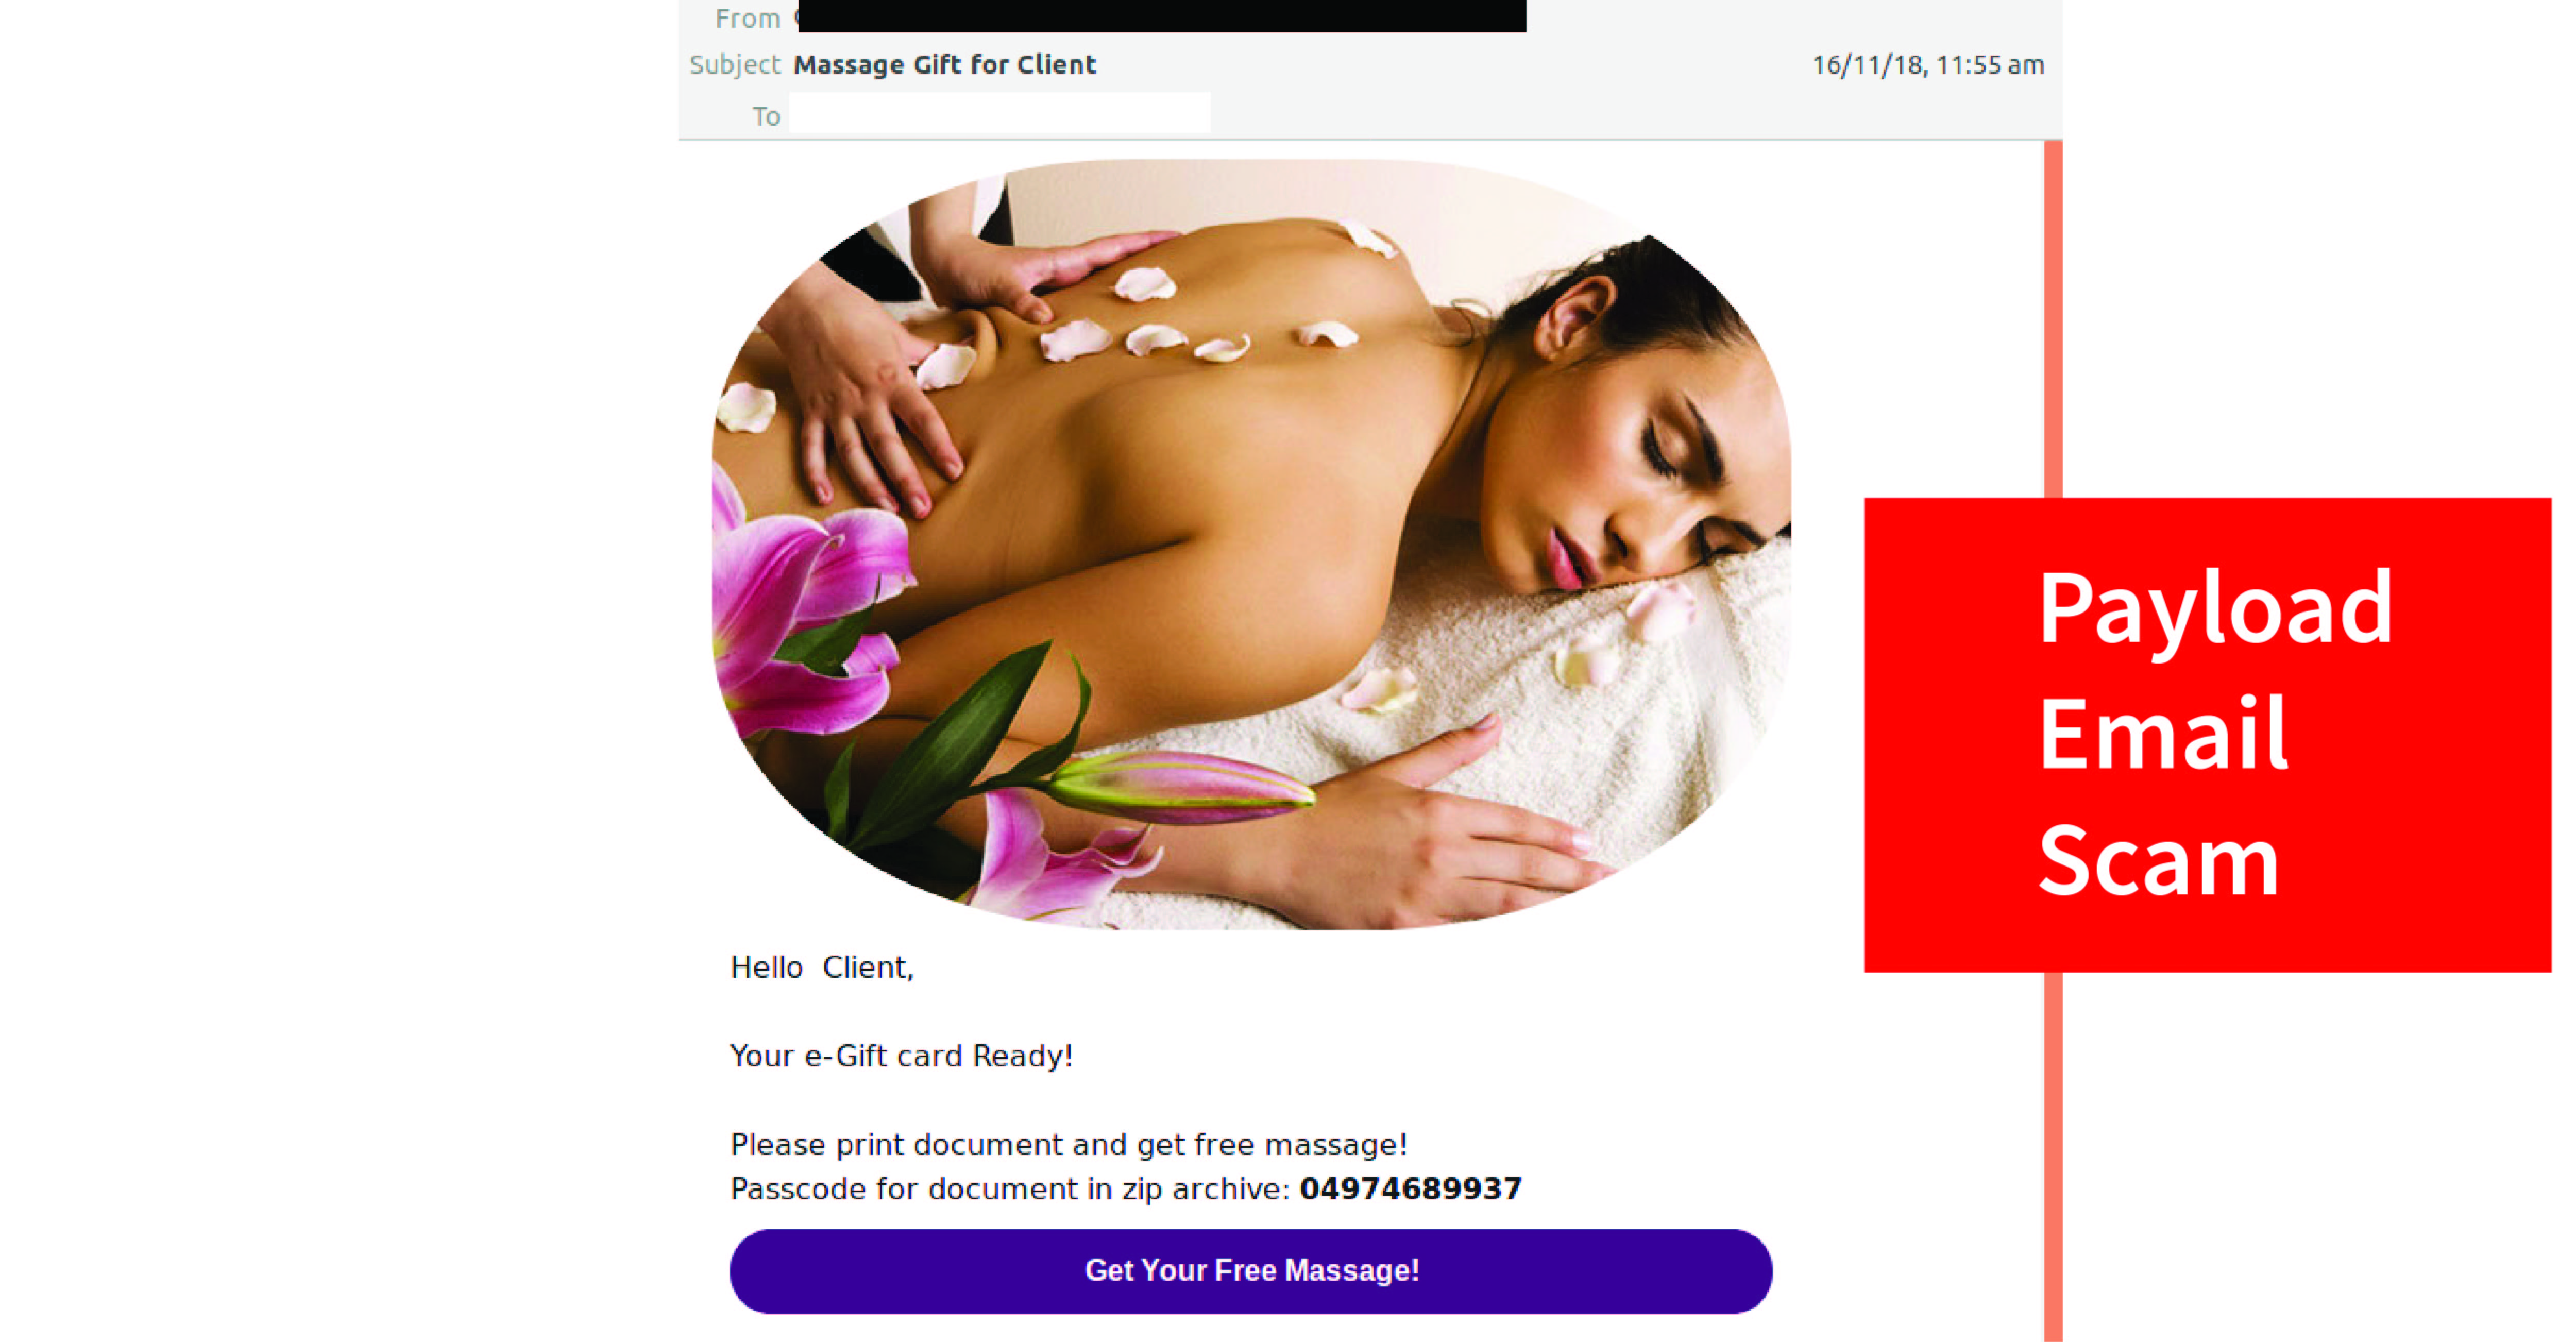 Massage Payload Scam Social Image